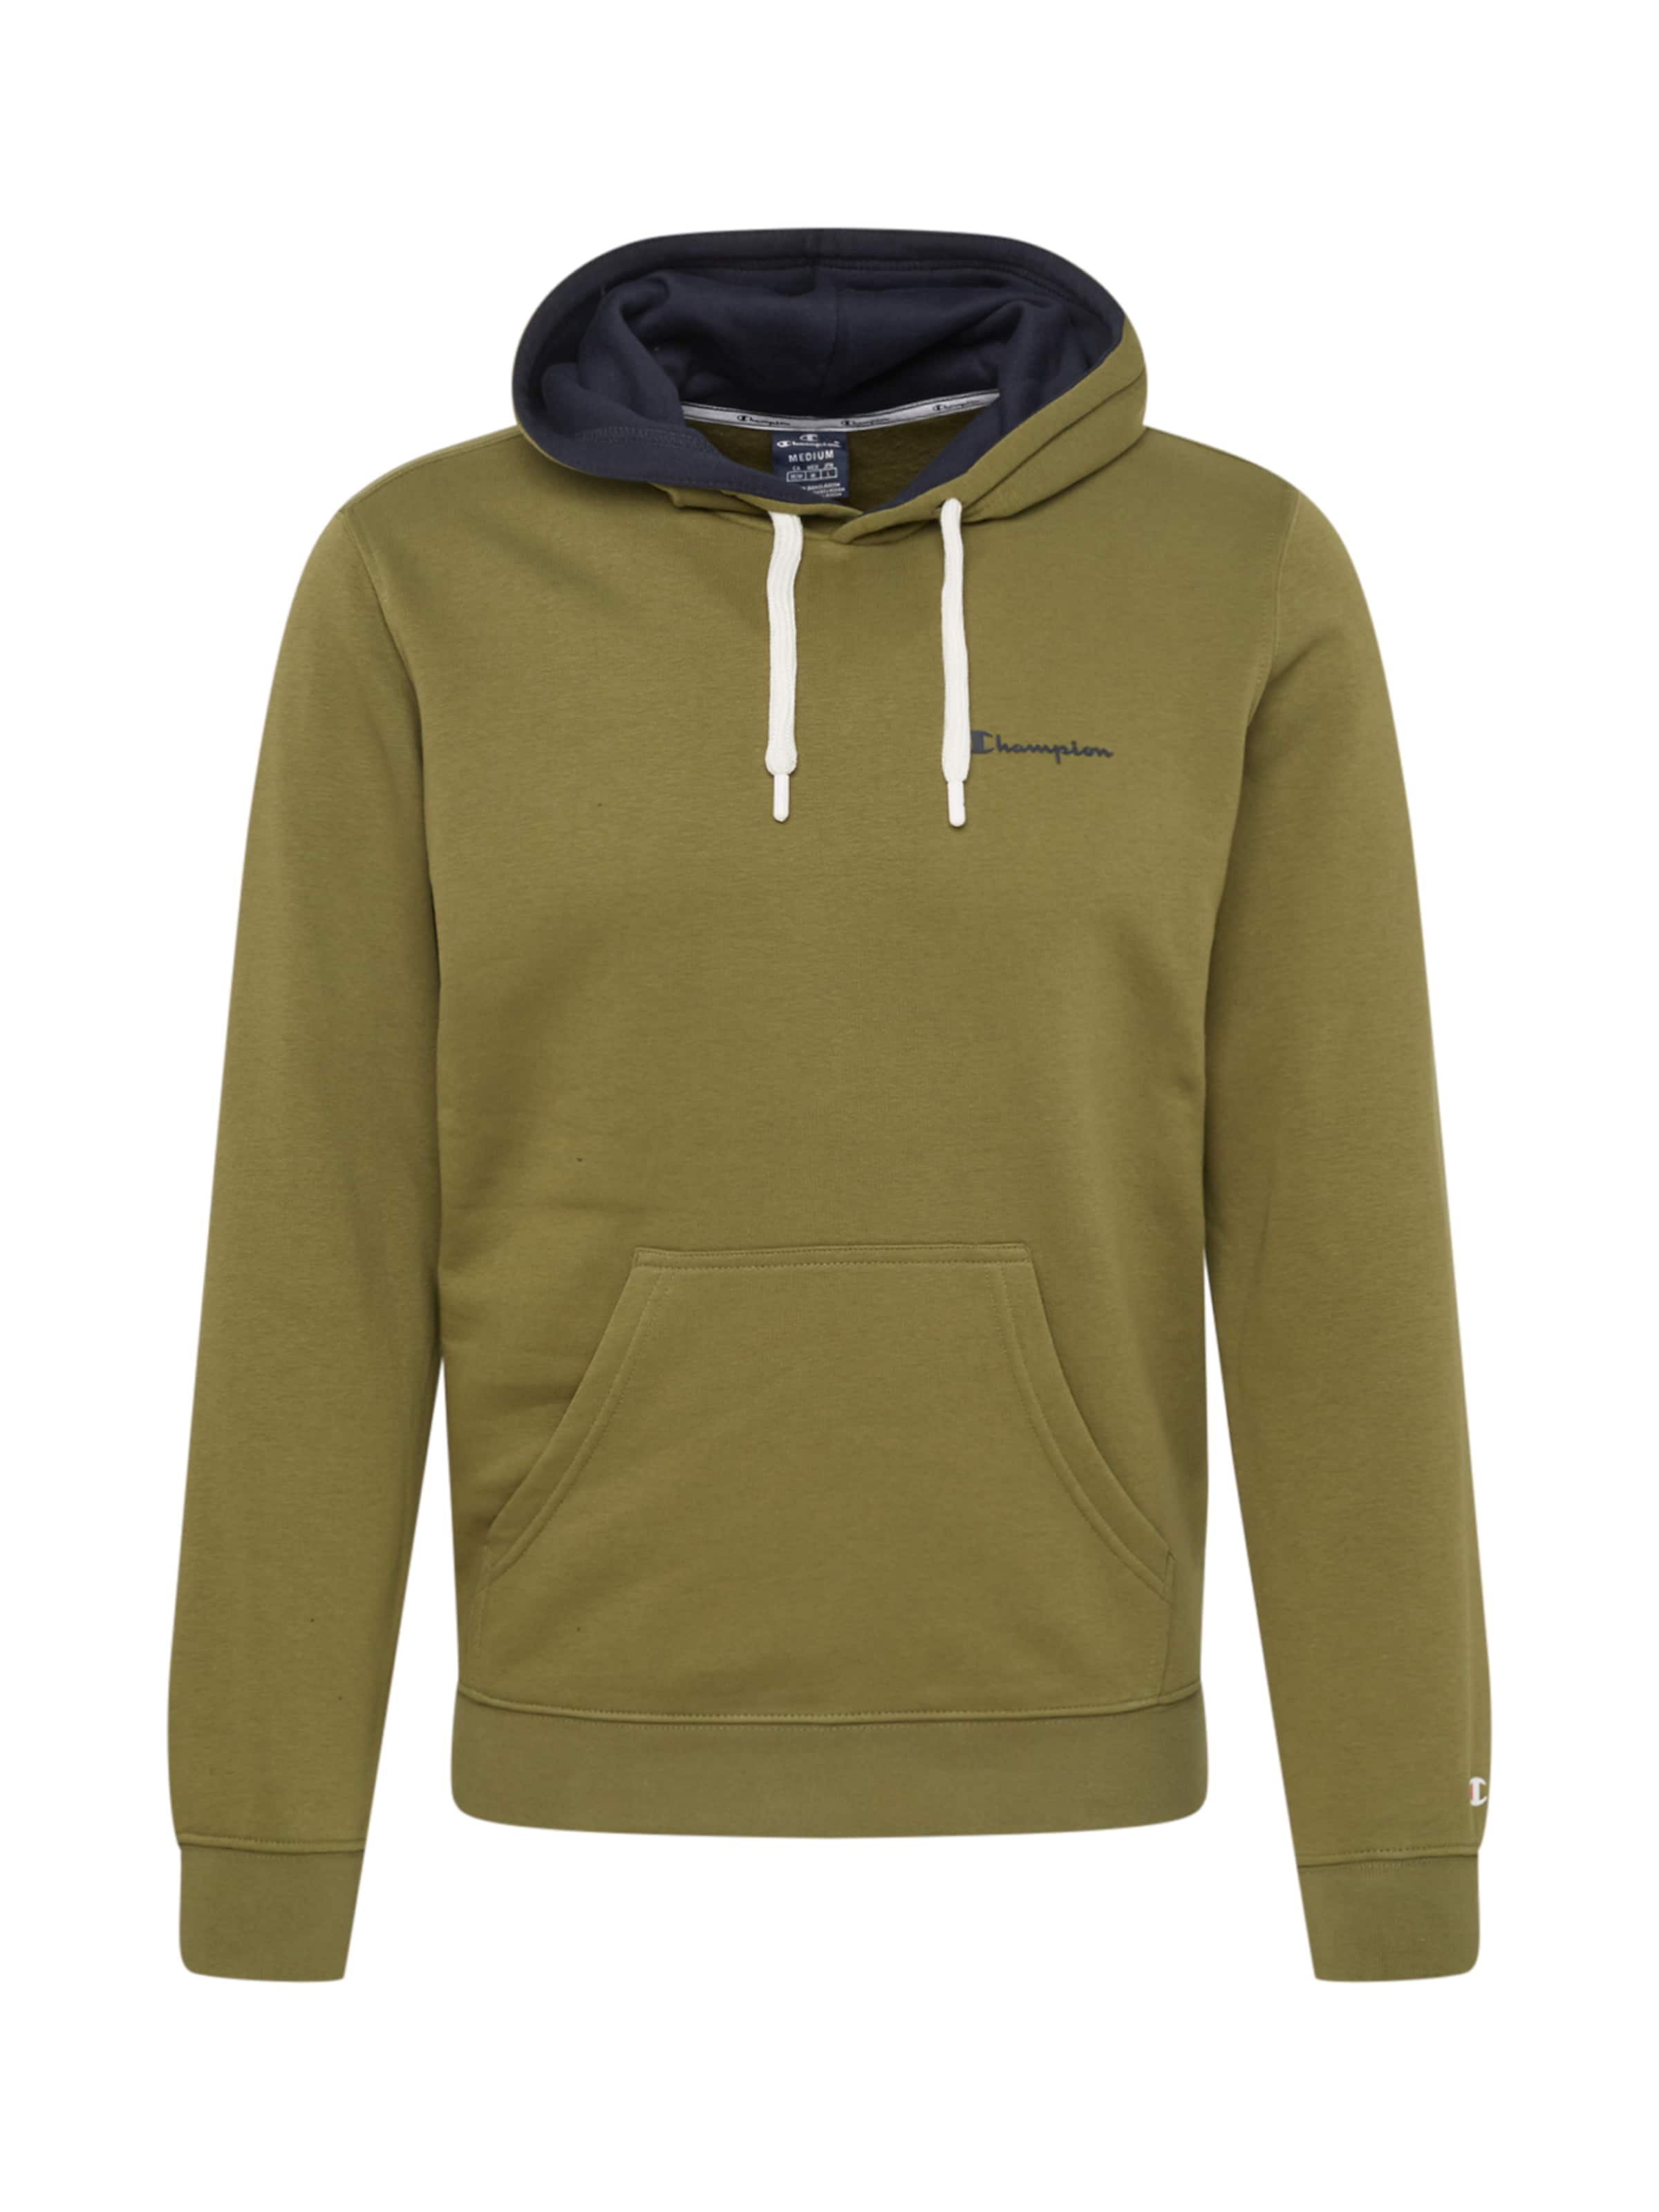 Olive shirt Champion Authentic En Sweat Apparel Athletic iwPTkOlXZu